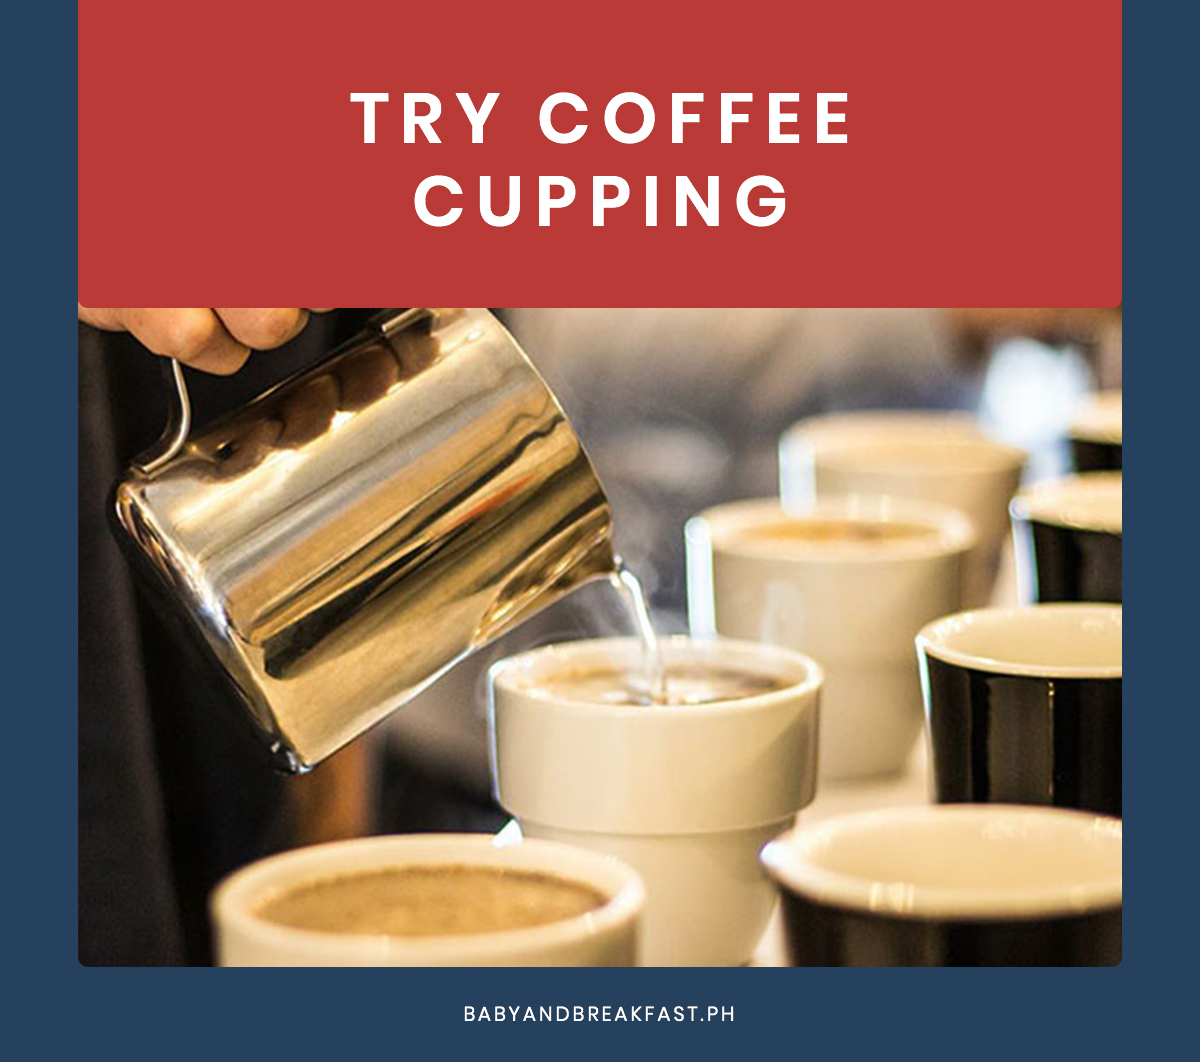 Try coffee cupping